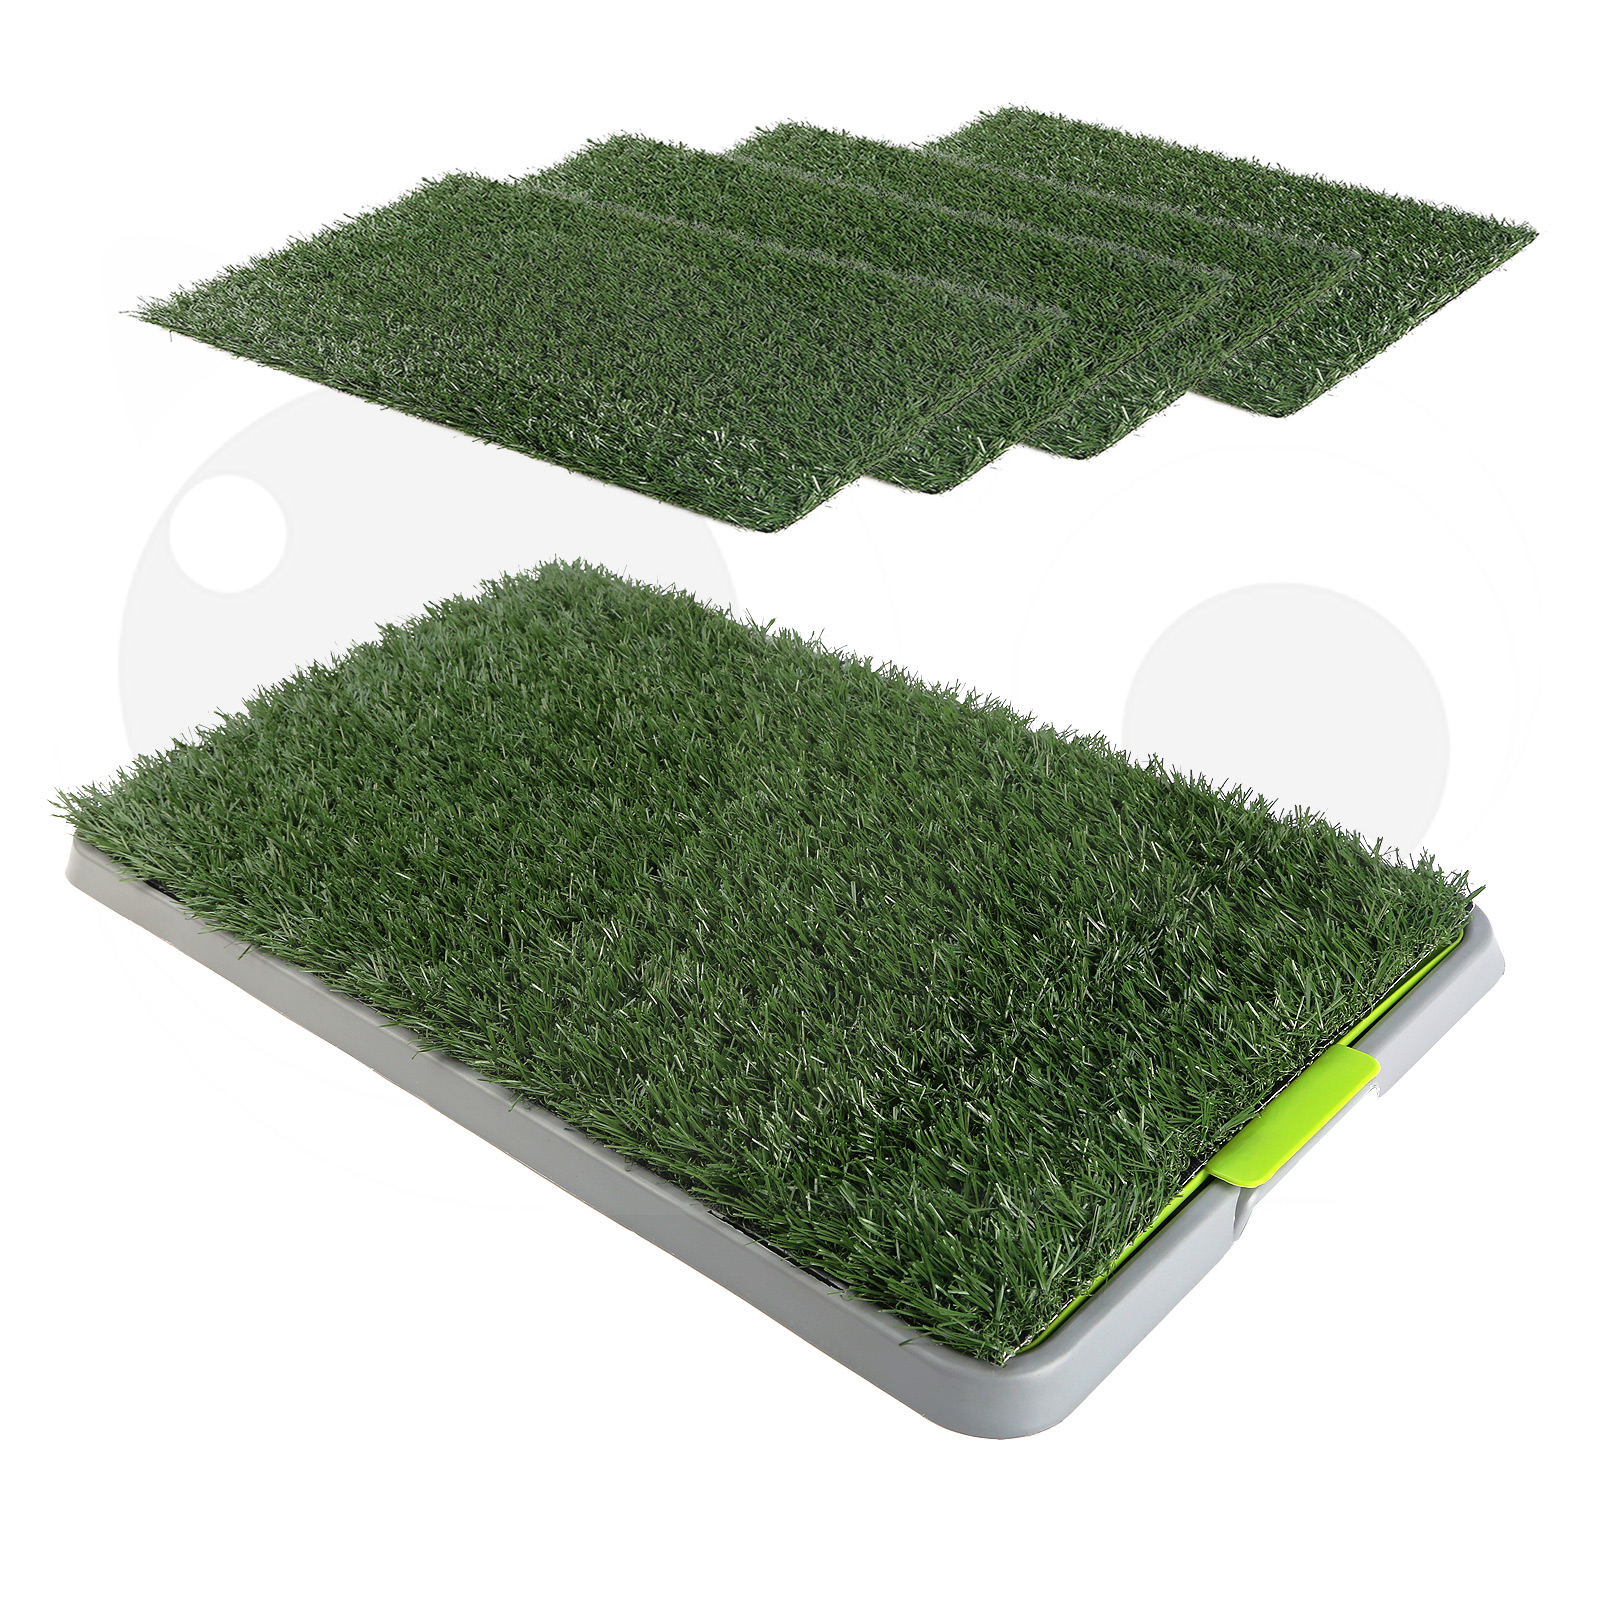 Pet Potty Training Pad Tray 69 x 43cm - 1 / 2 / 4  Grass Mat